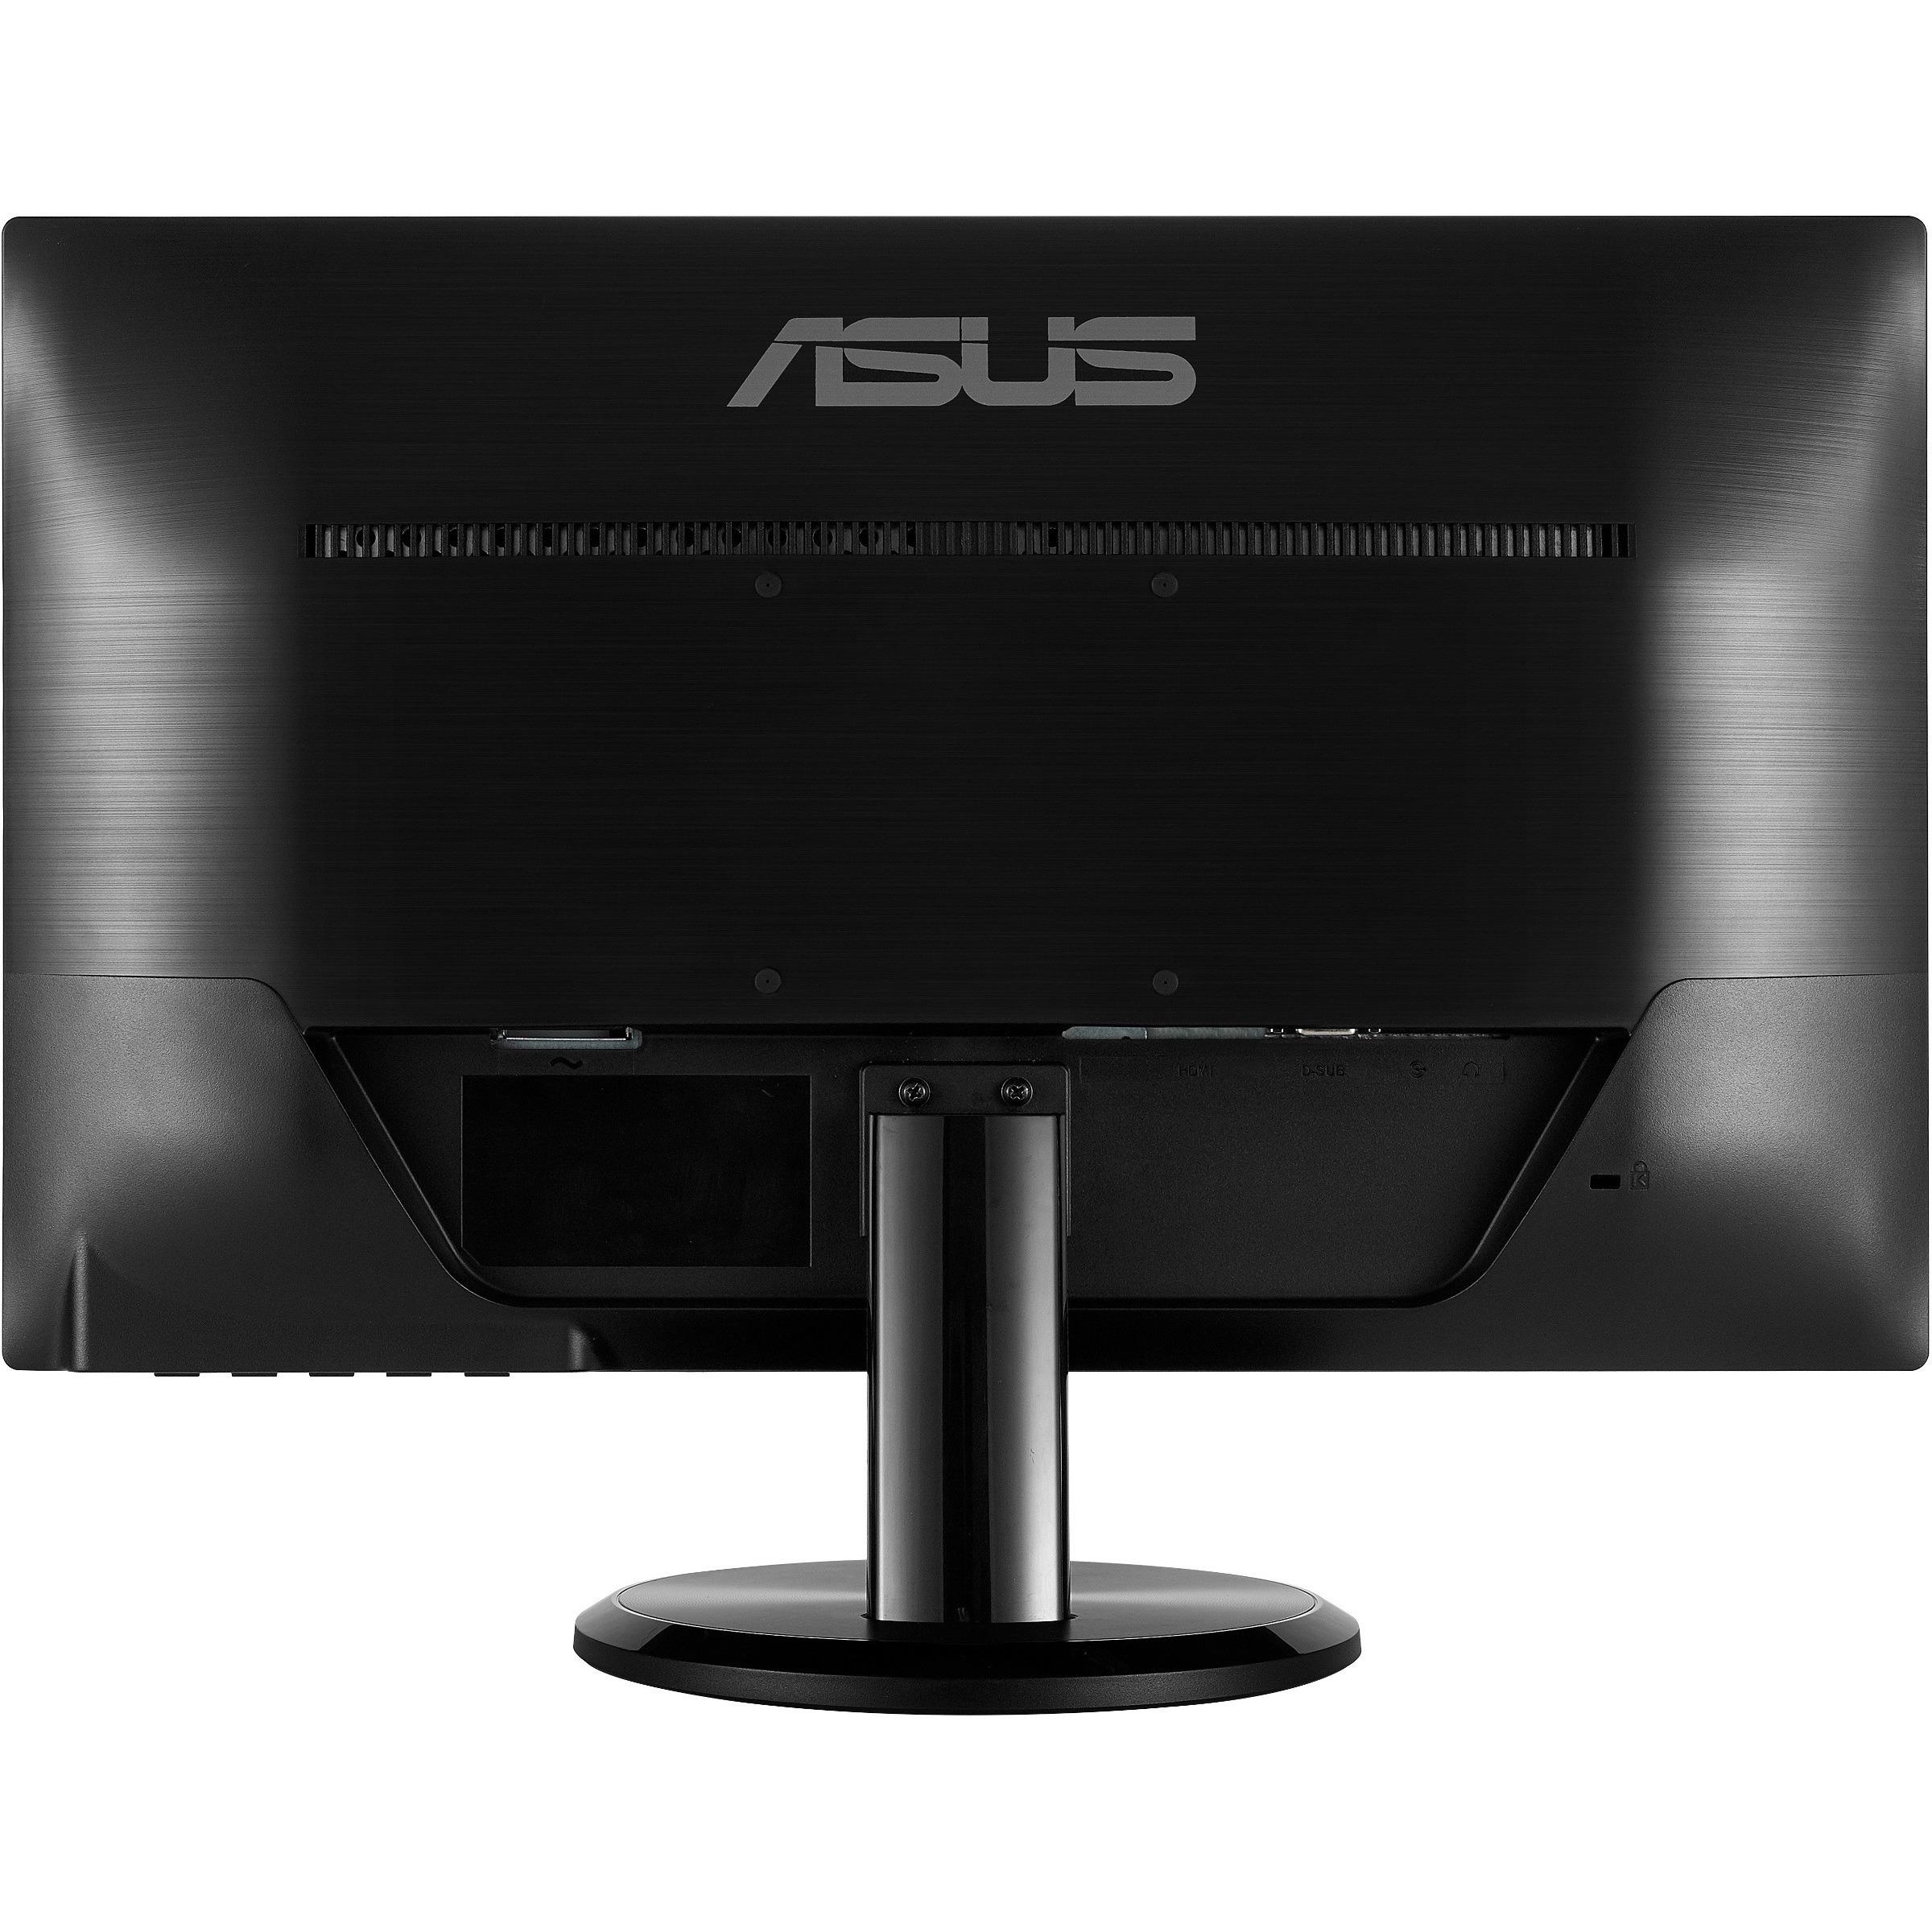 Asus VA229H 21.5inch IPS LED LCD Monitor - 16:9 - 5 ms